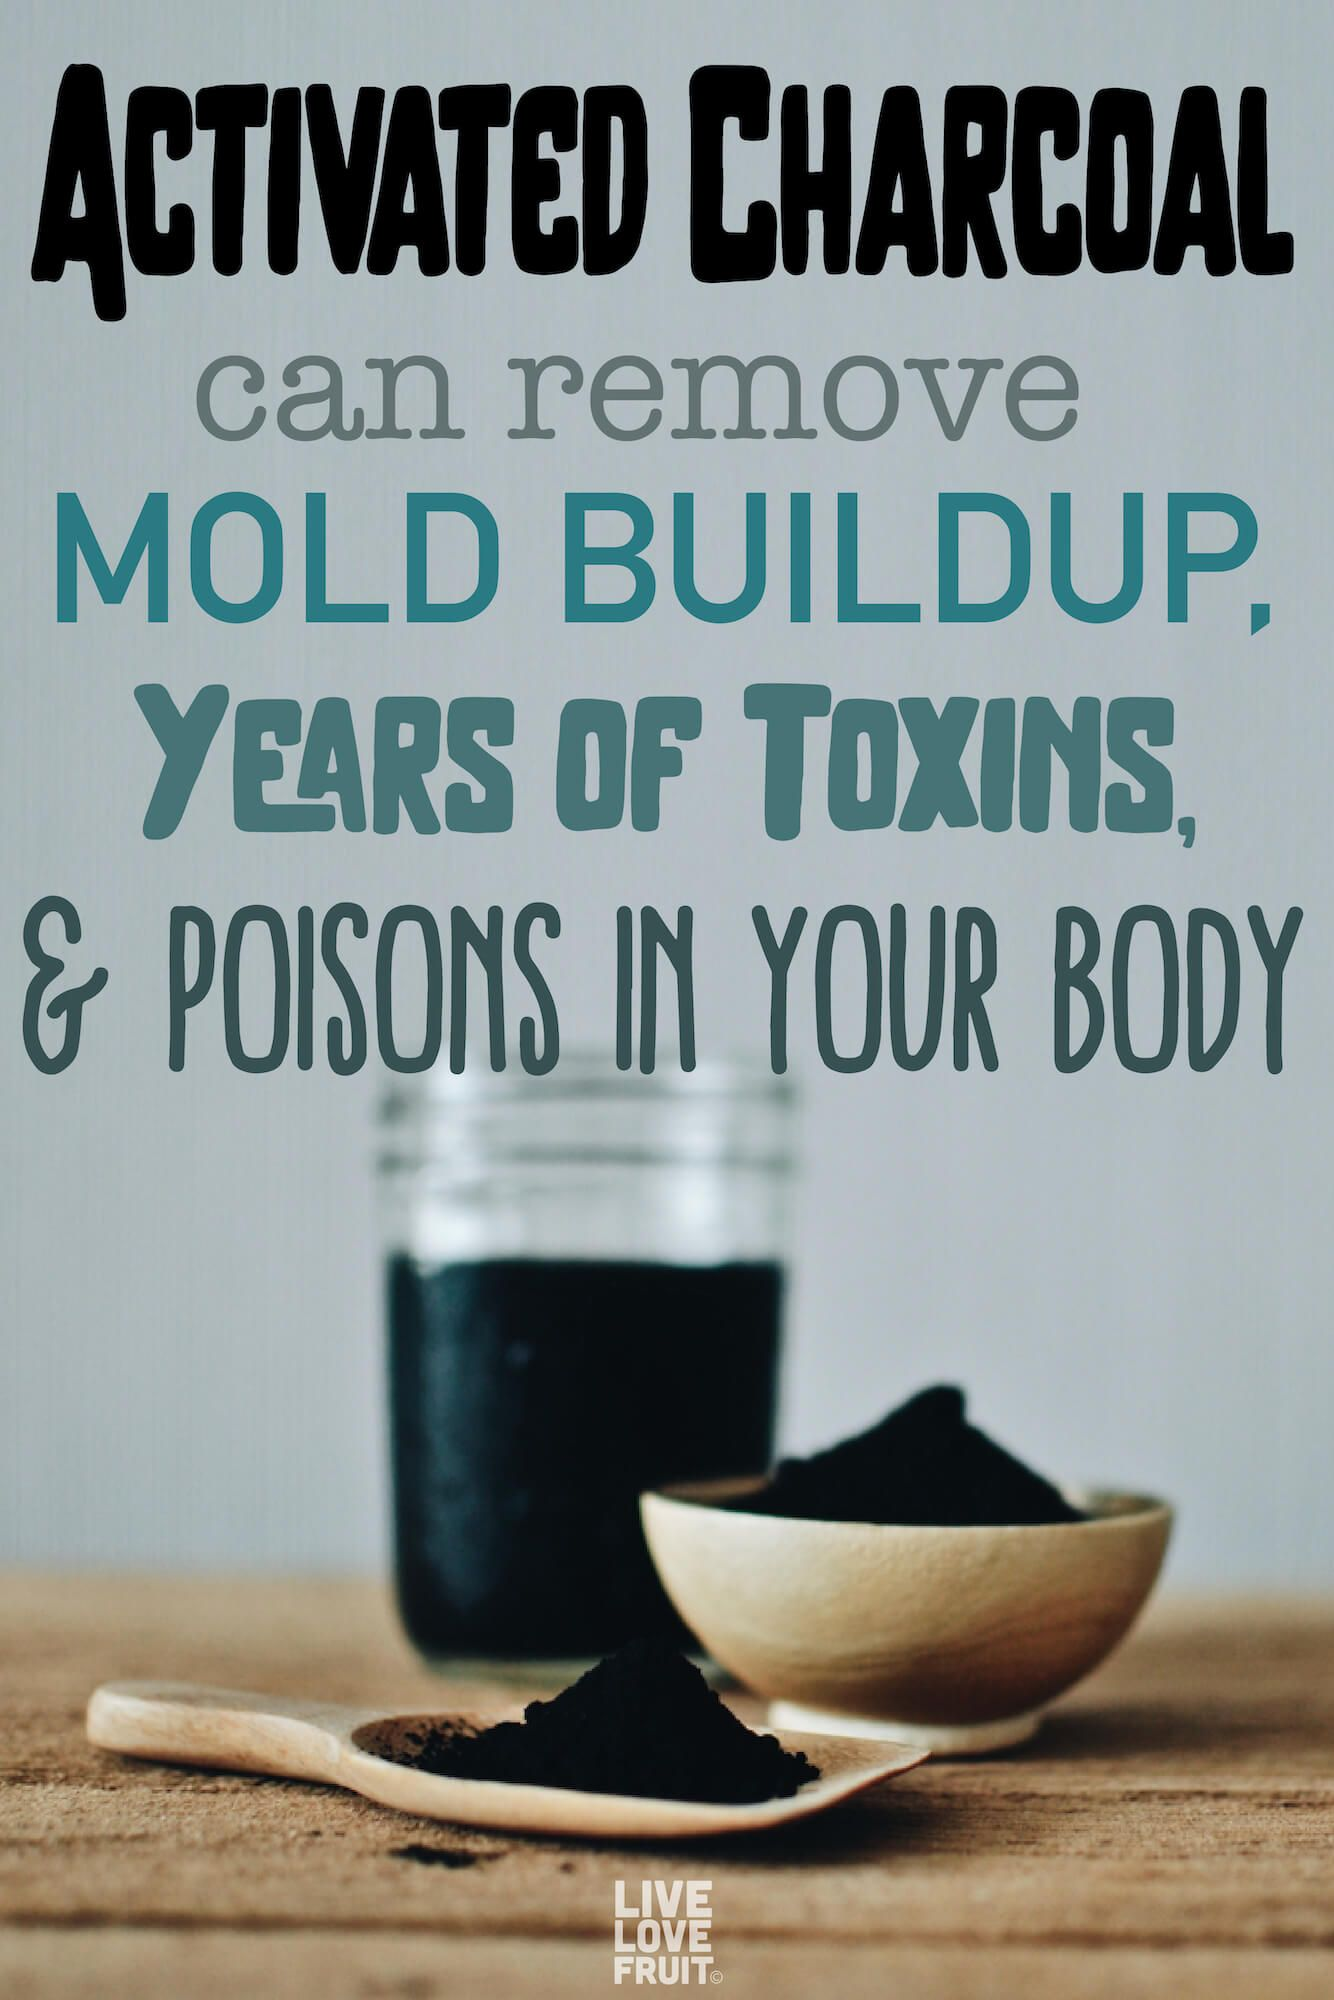 54c464f98b1dbe7a9005e72a34b8ad77 - How To Get Rid Of Mold In Your Body Naturally